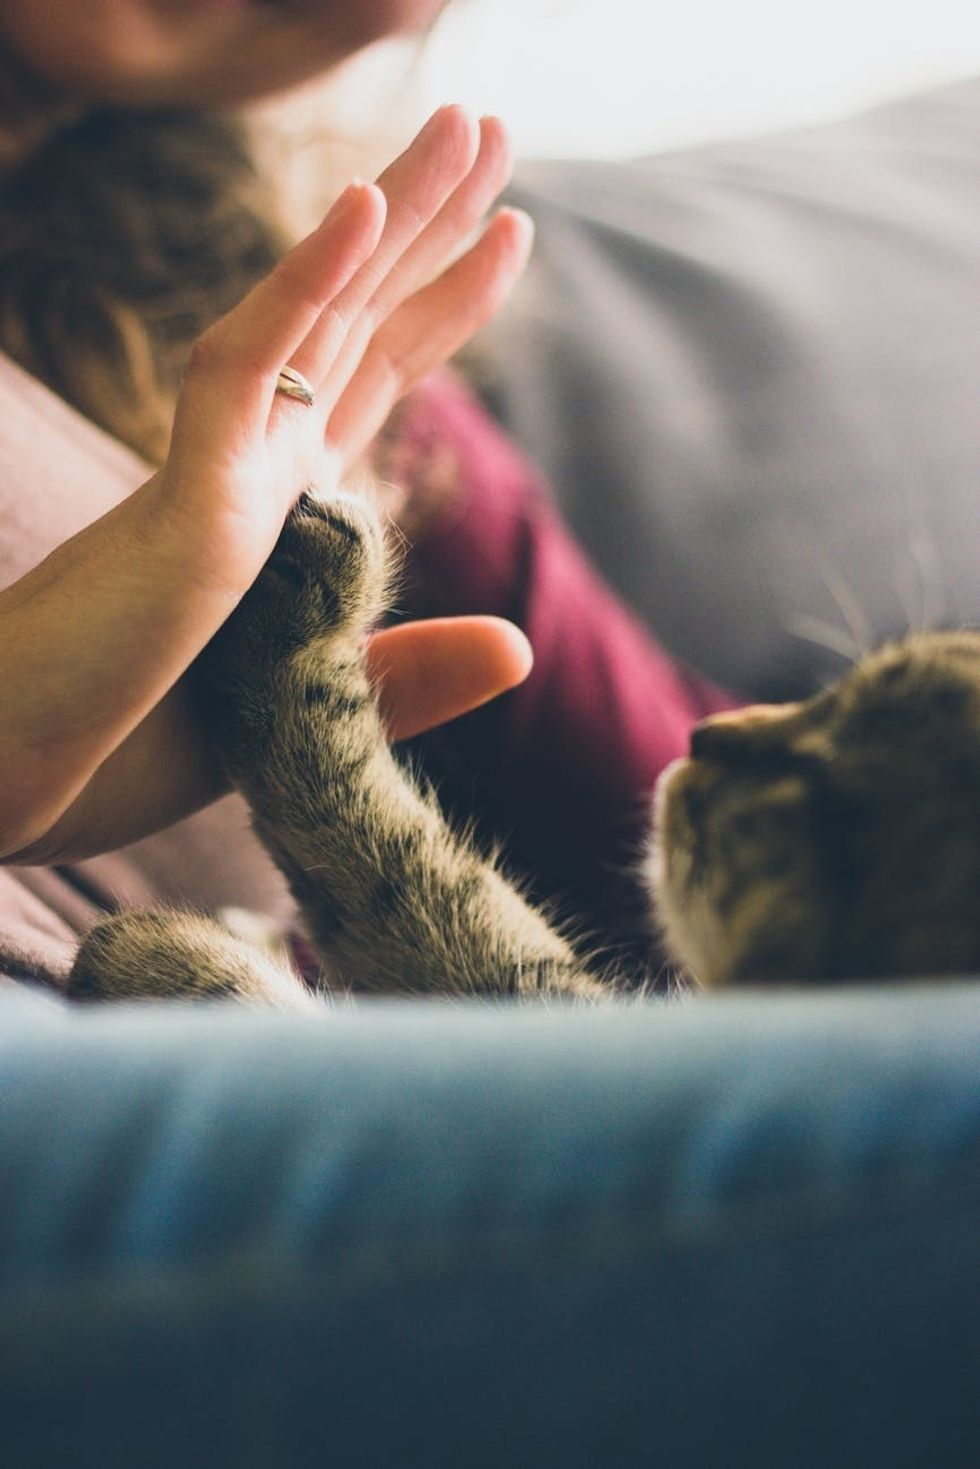 Declawing Is Never An Option